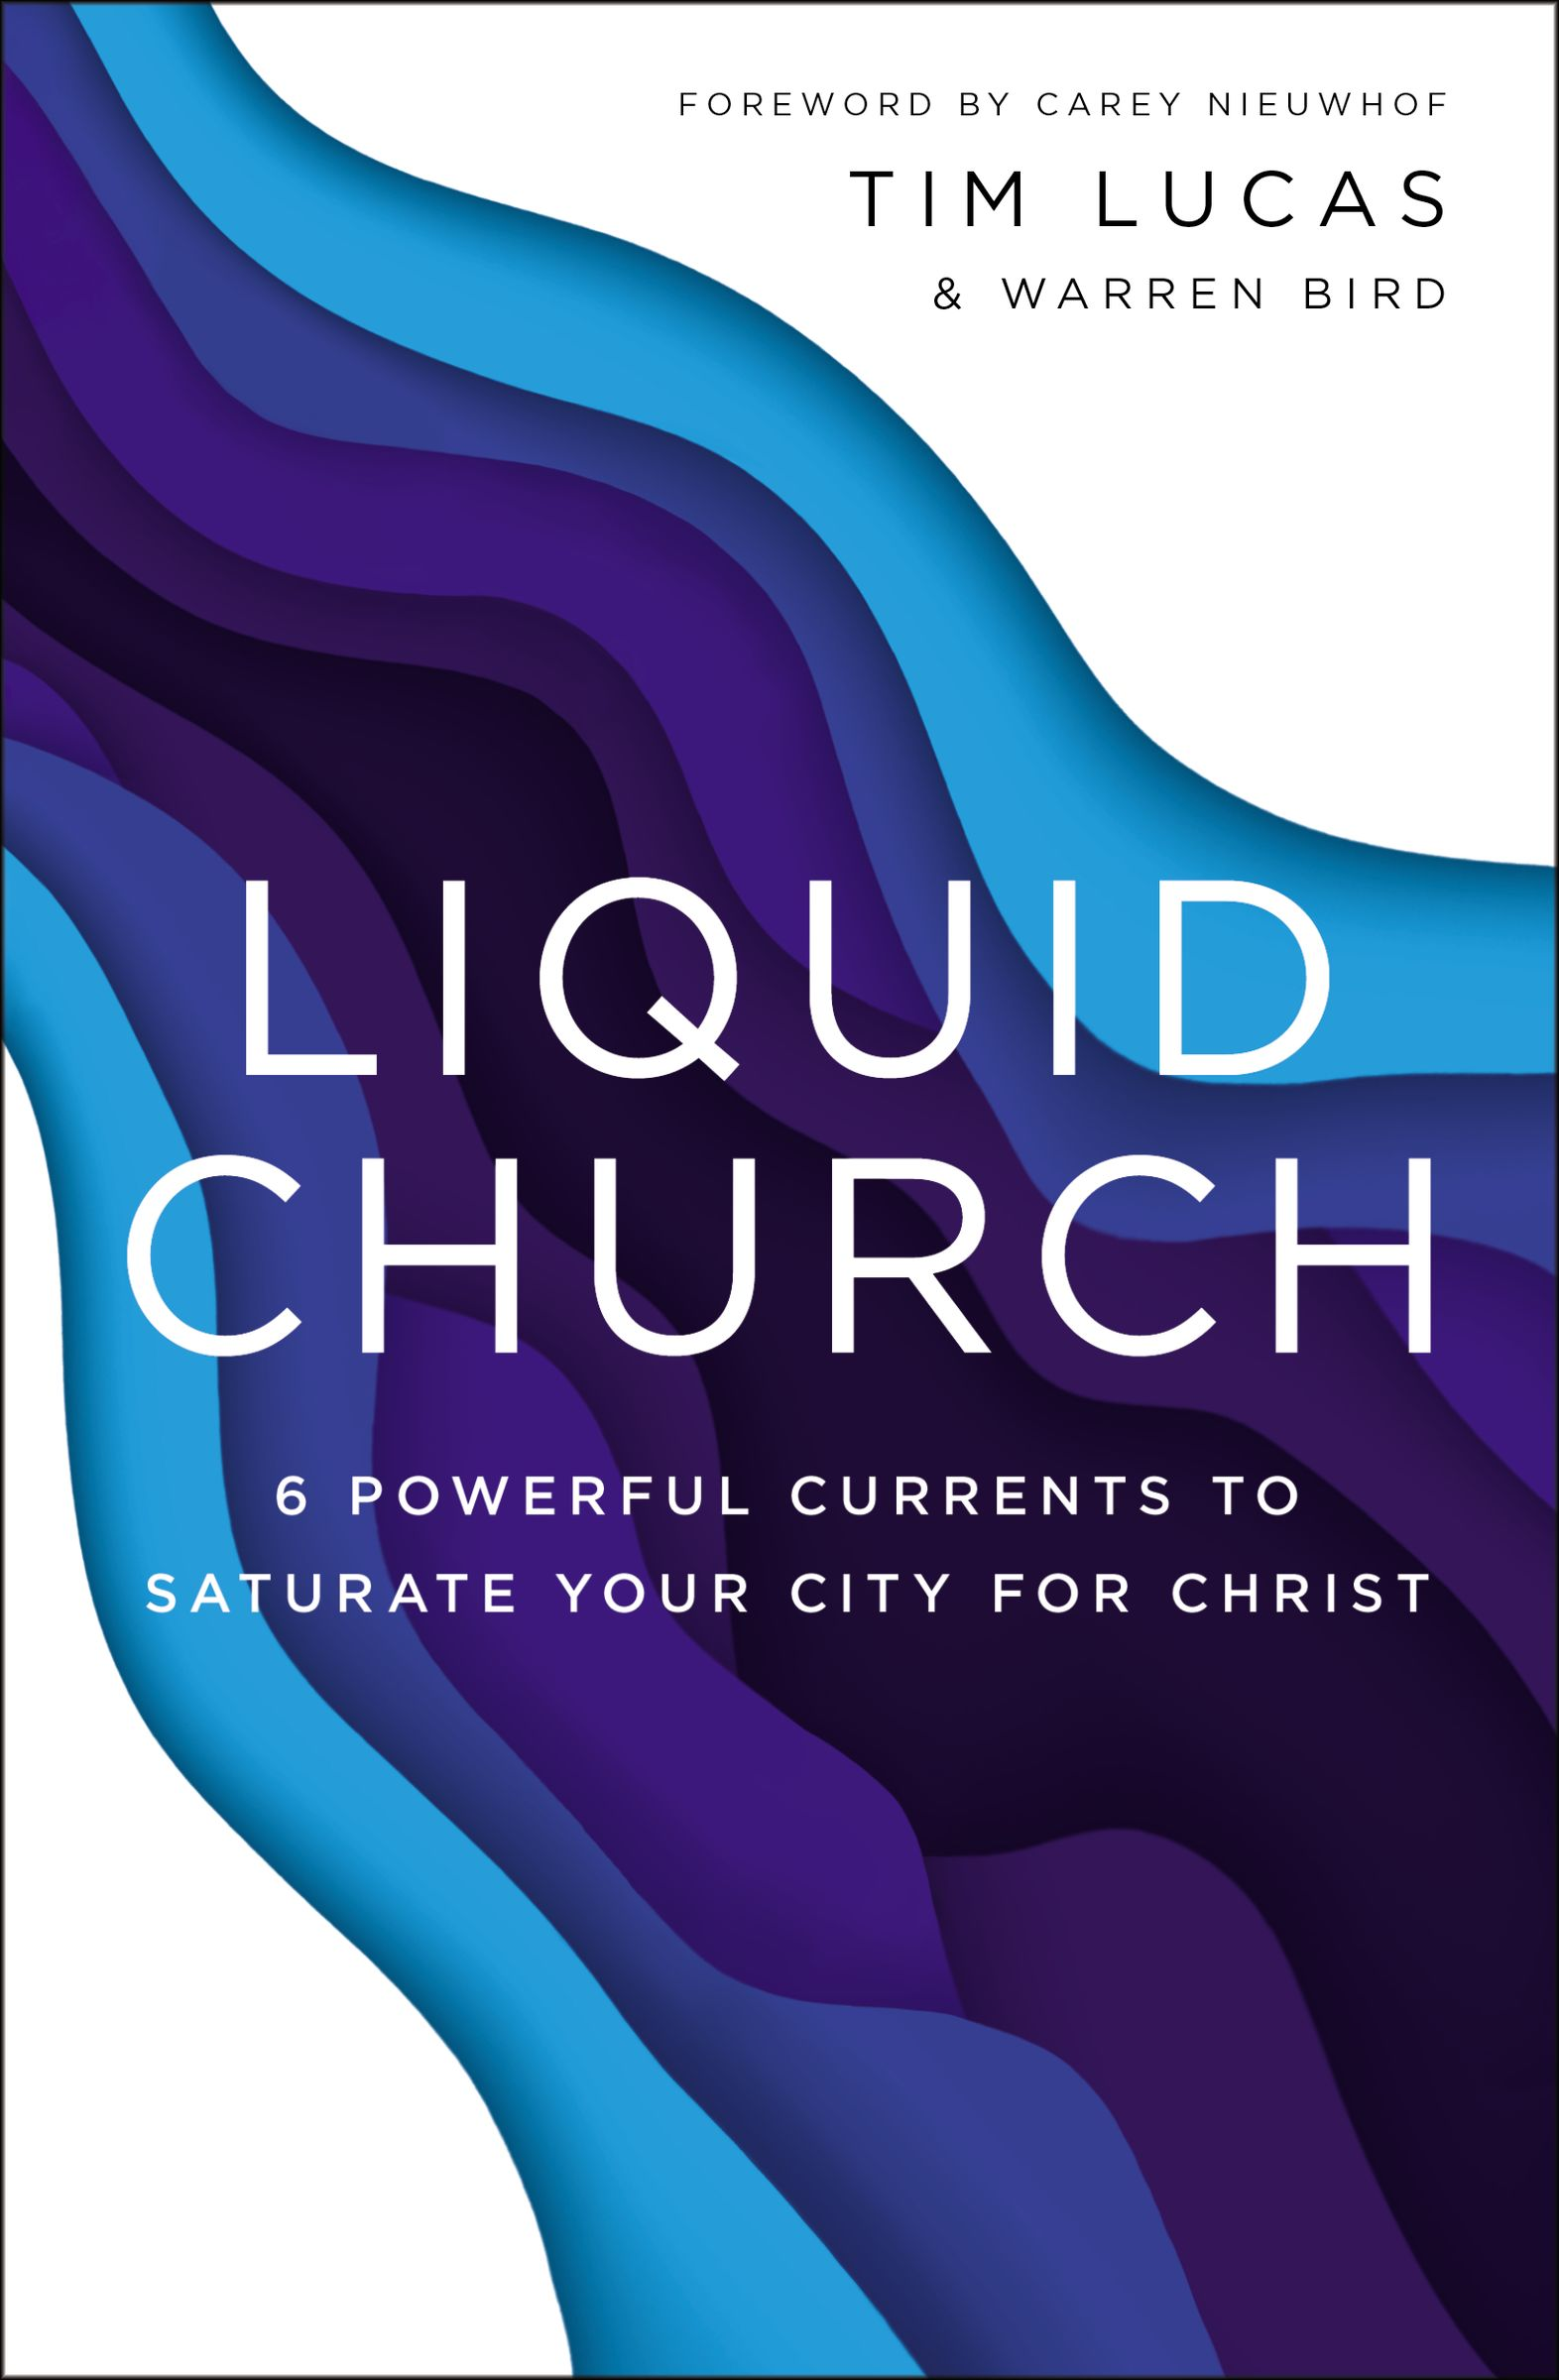 Liquid Church: 6 Powerful Currents to Saturate Your City for Christ by Timothy P. Lucas, Warren Bird